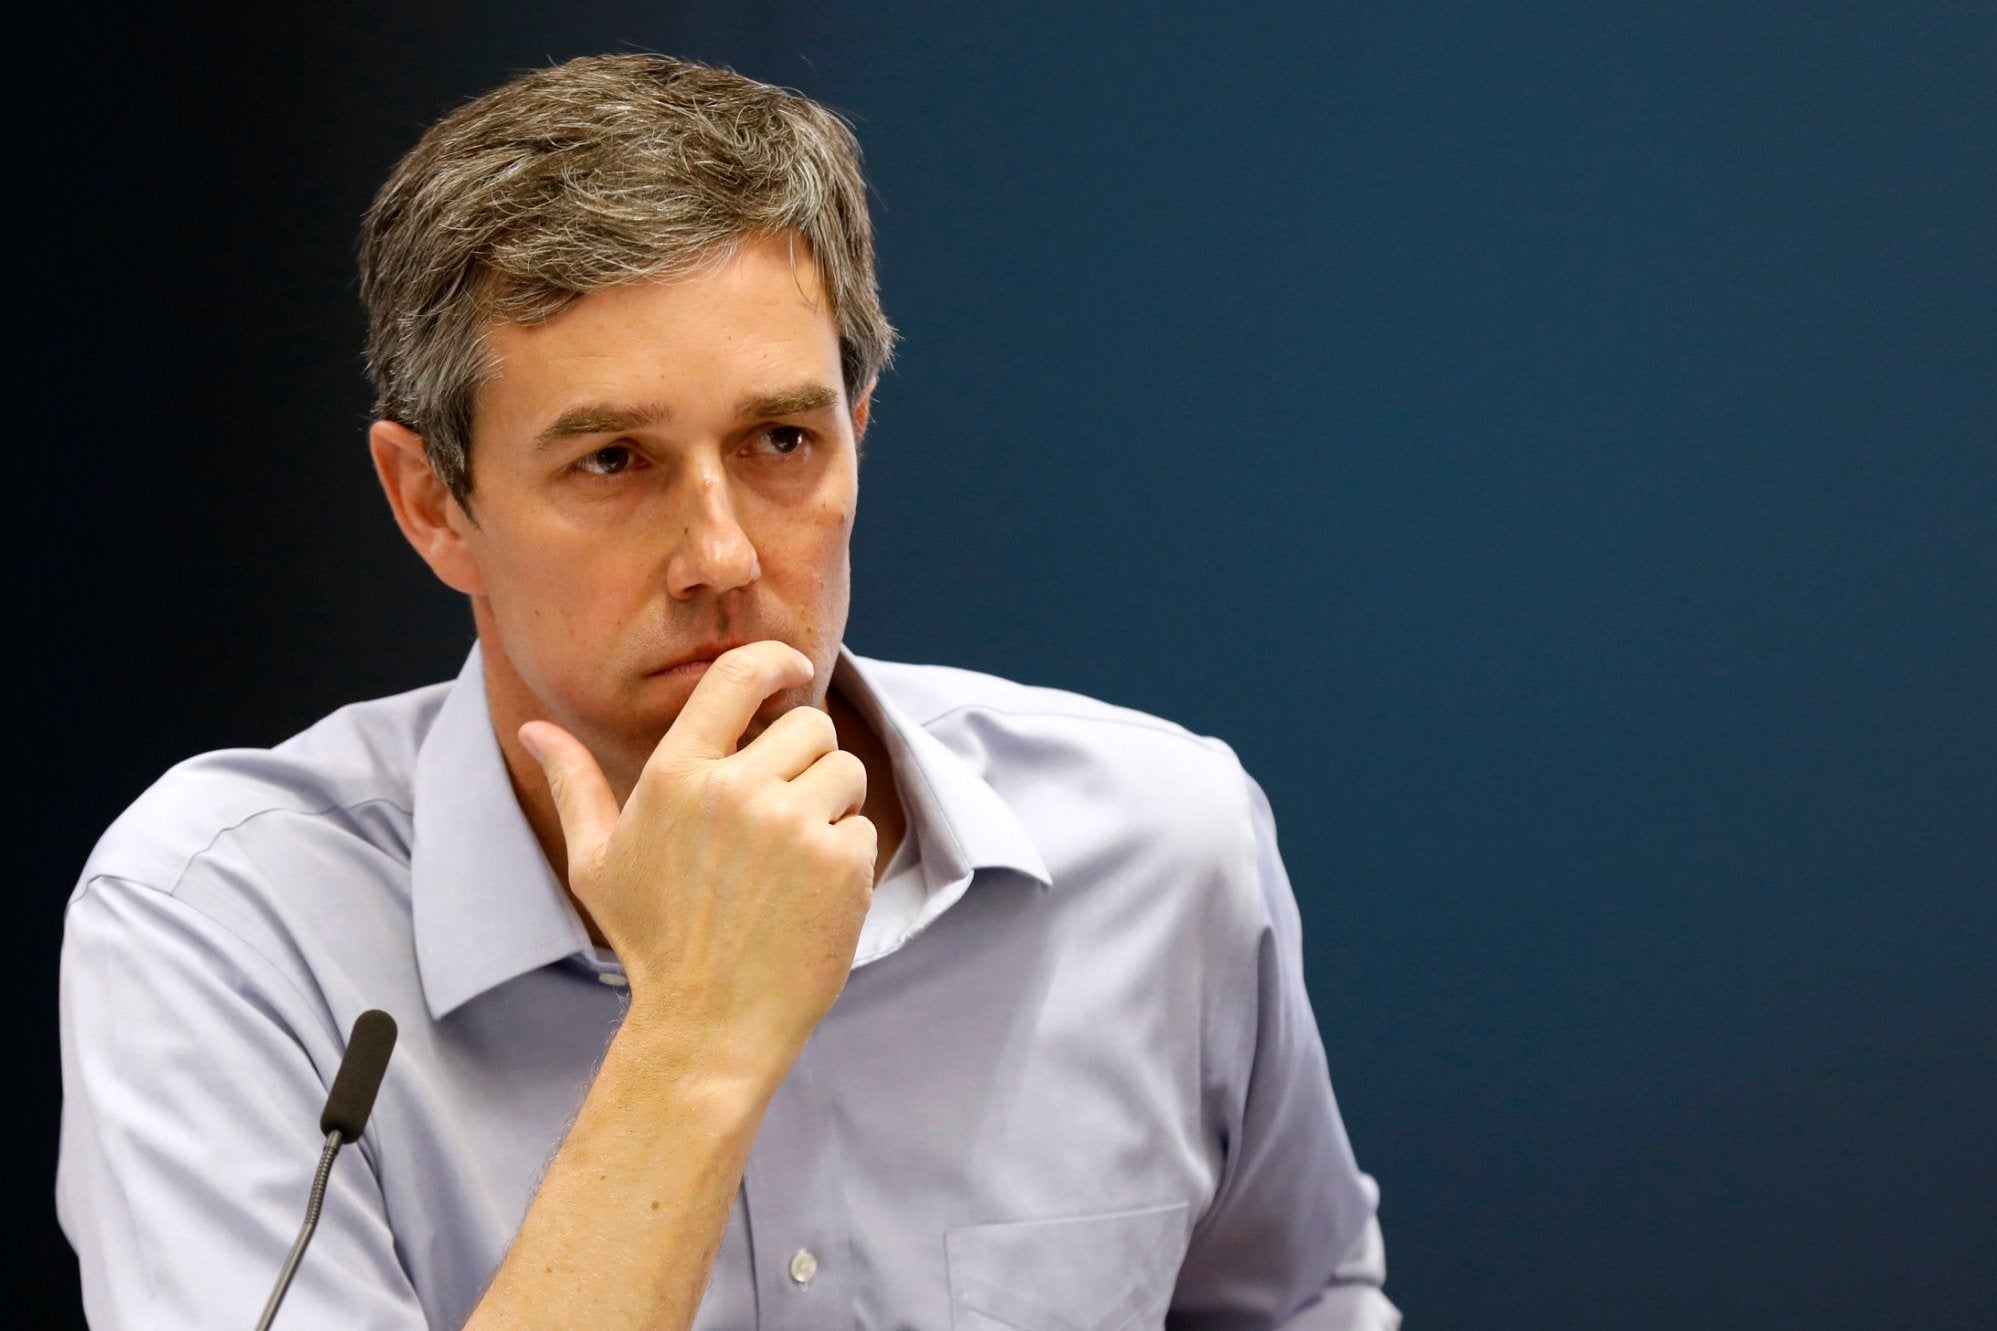 Beto O'Rourke, I'm not mad. I'm just disappointed